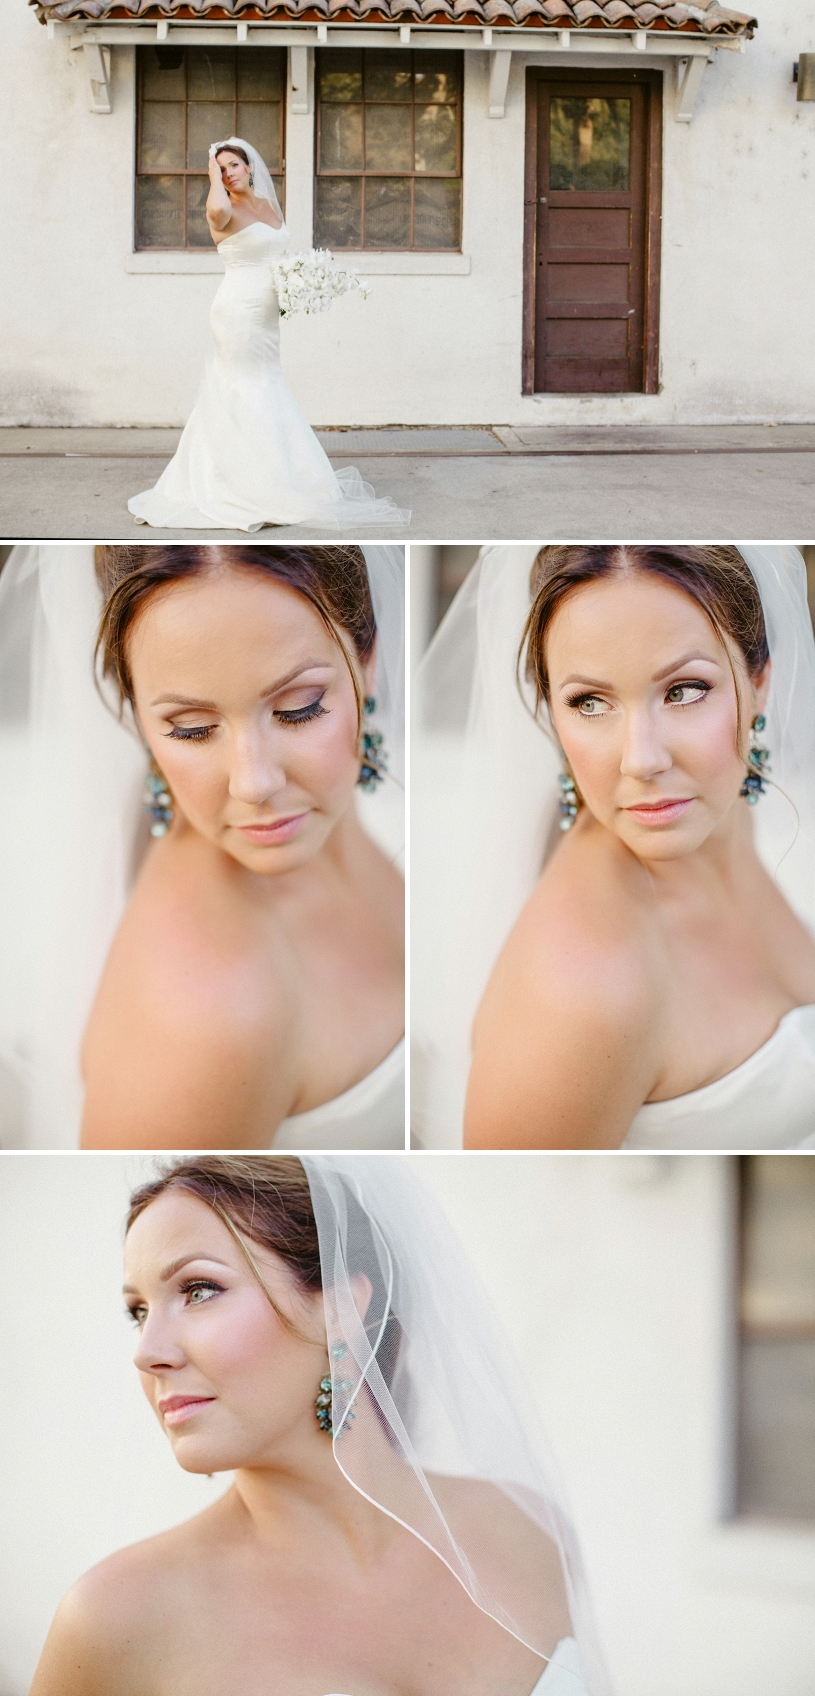 modern cat eye makeup look at a wente vneyard wedding